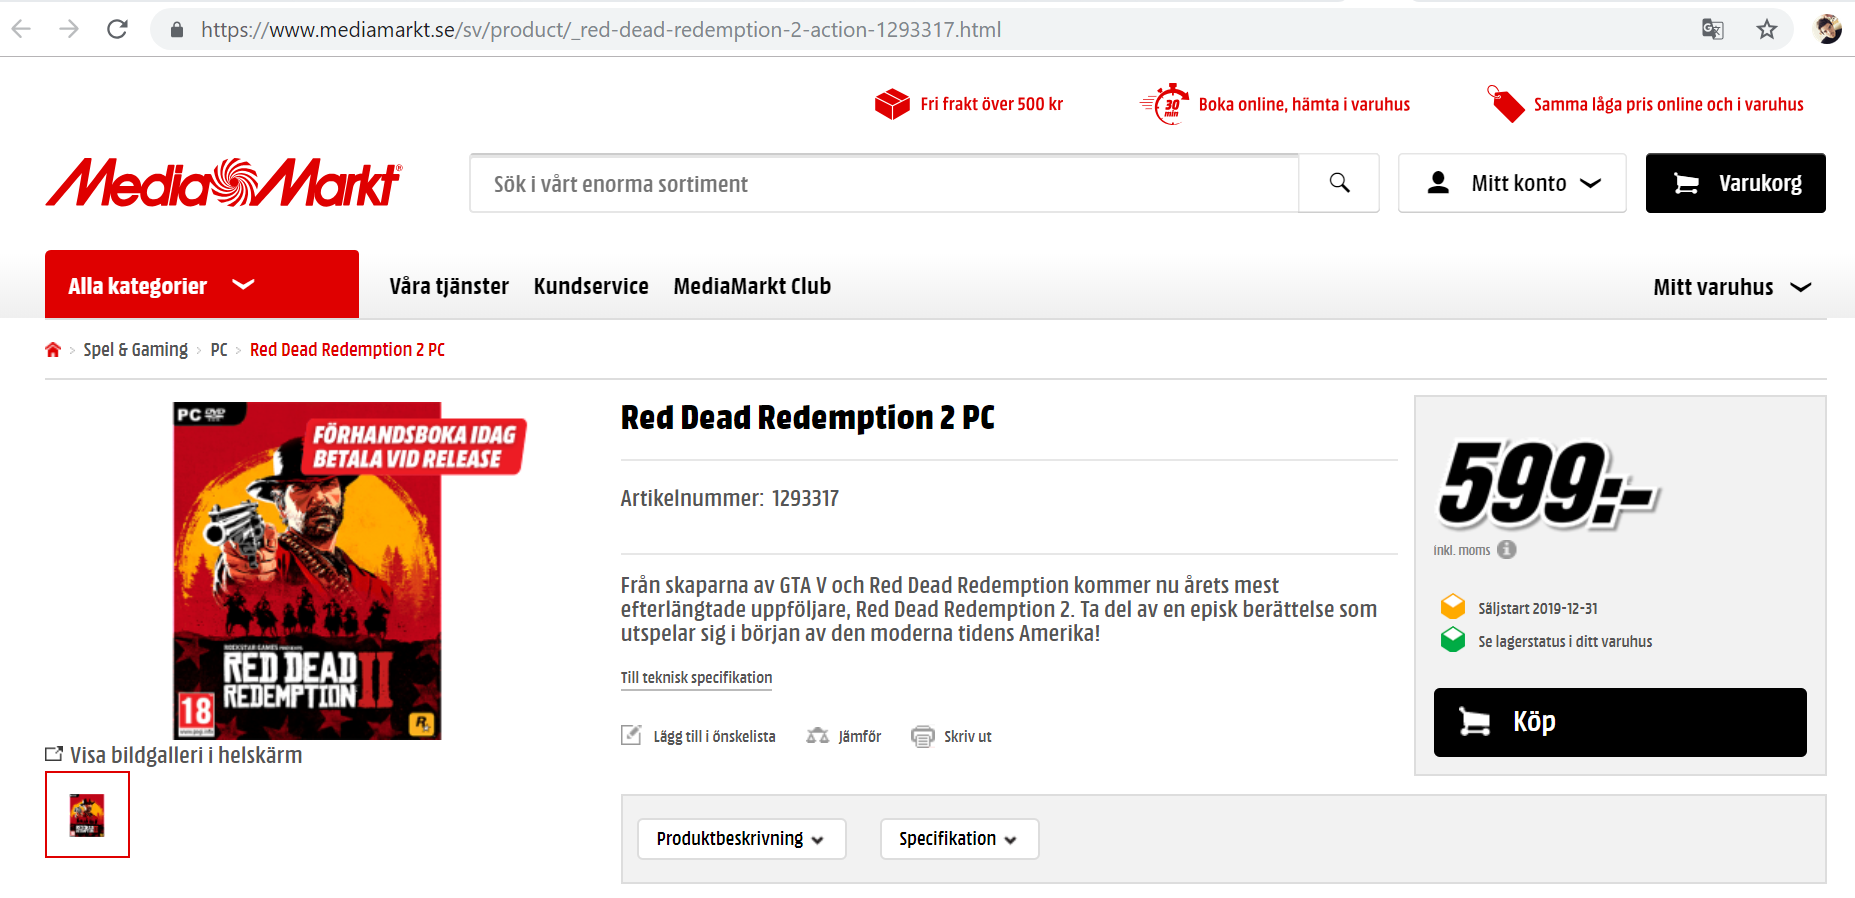 Merchant Lists Red Dead Redemption 2 For The Pc In The Sales List